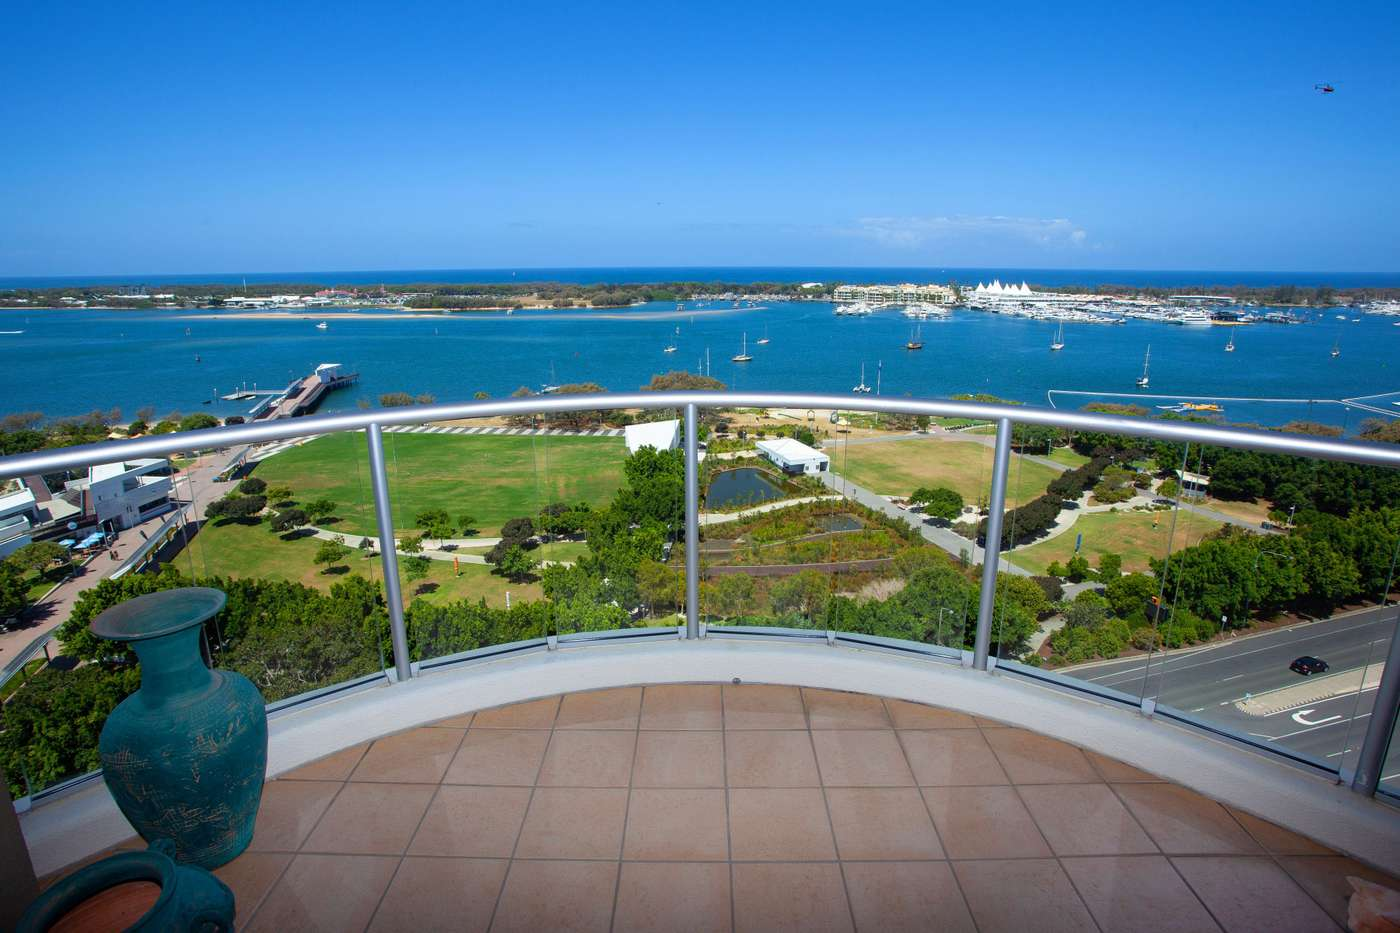 Main view of Homely apartment listing, 1401/50 'Pivotal Point', Marine Parade, Southport, QLD 4215